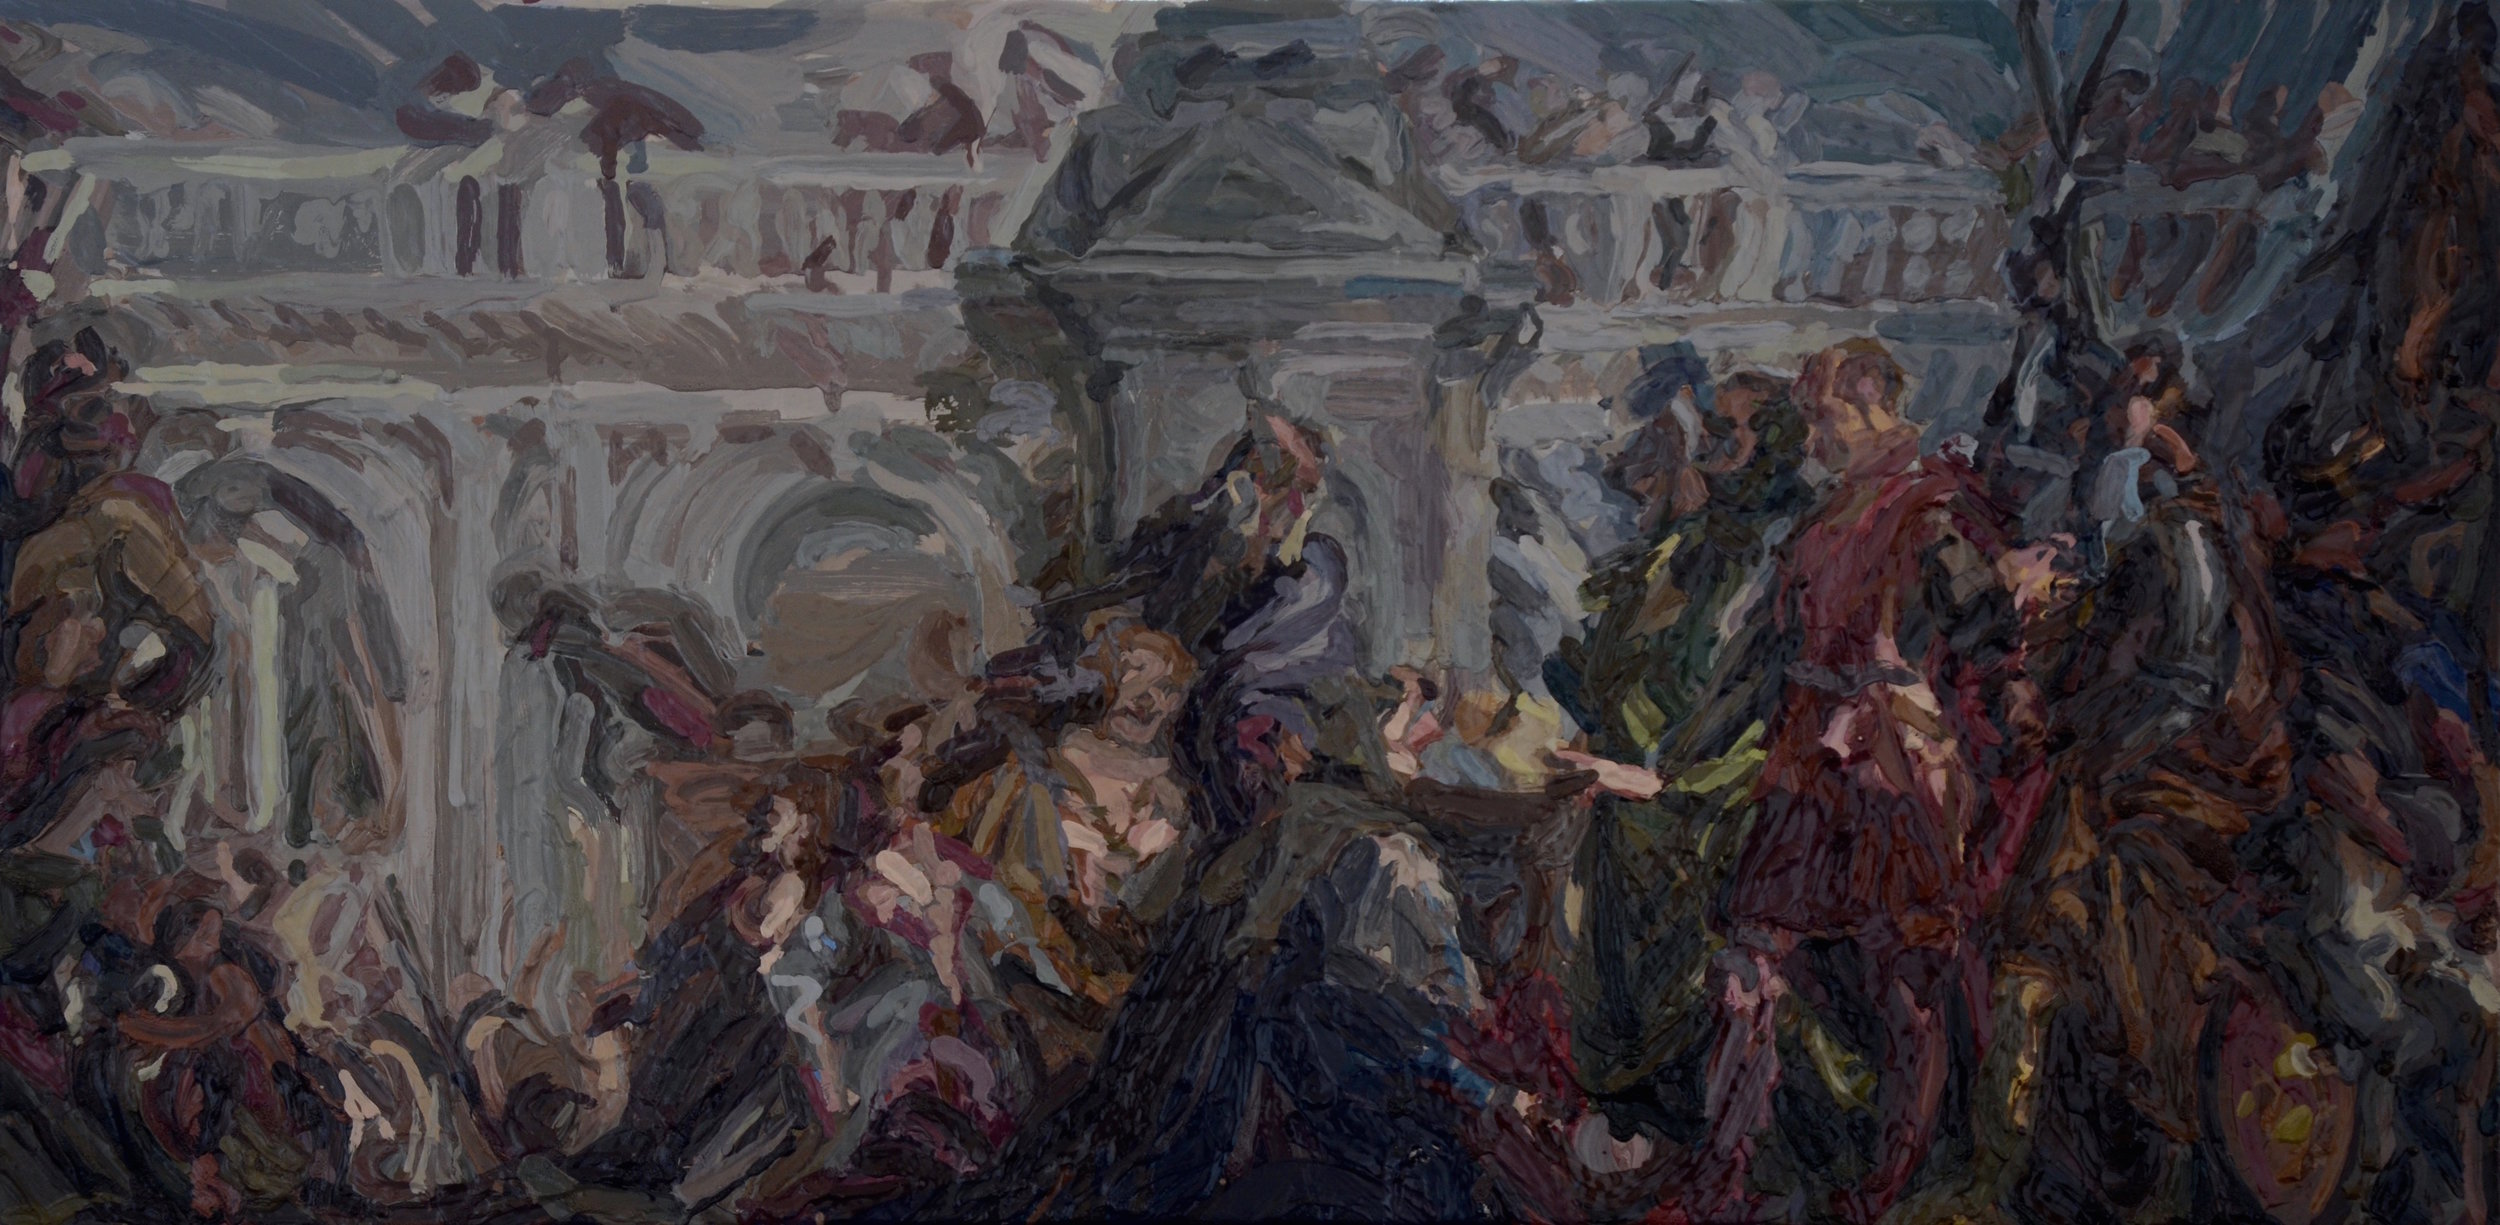 'After Veronese', Charlie Schaffer, Oil on canvas, 35 x 70 cm